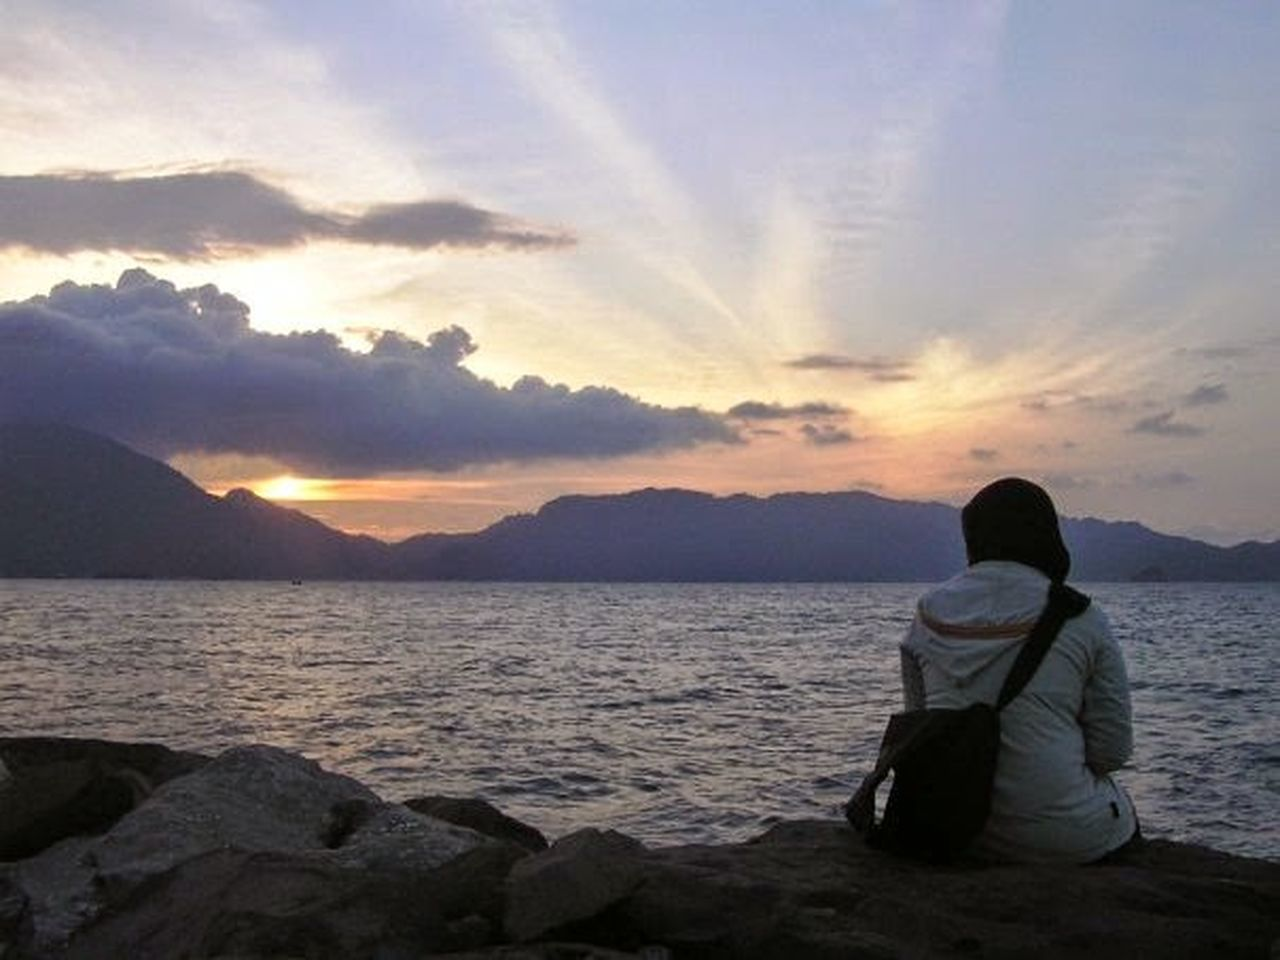 sunset, sitting, rear view, tranquil scene, cloud - sky, sea, relaxation, only women, sky, rock - object, mountain, scenics, zen-like, one woman only, looking at view, adults only, one person, vacations, adult, beauty in nature, people, beach, tranquility, spirituality, water, nature, full length, outdoors, women, horizon over water, night, young adult